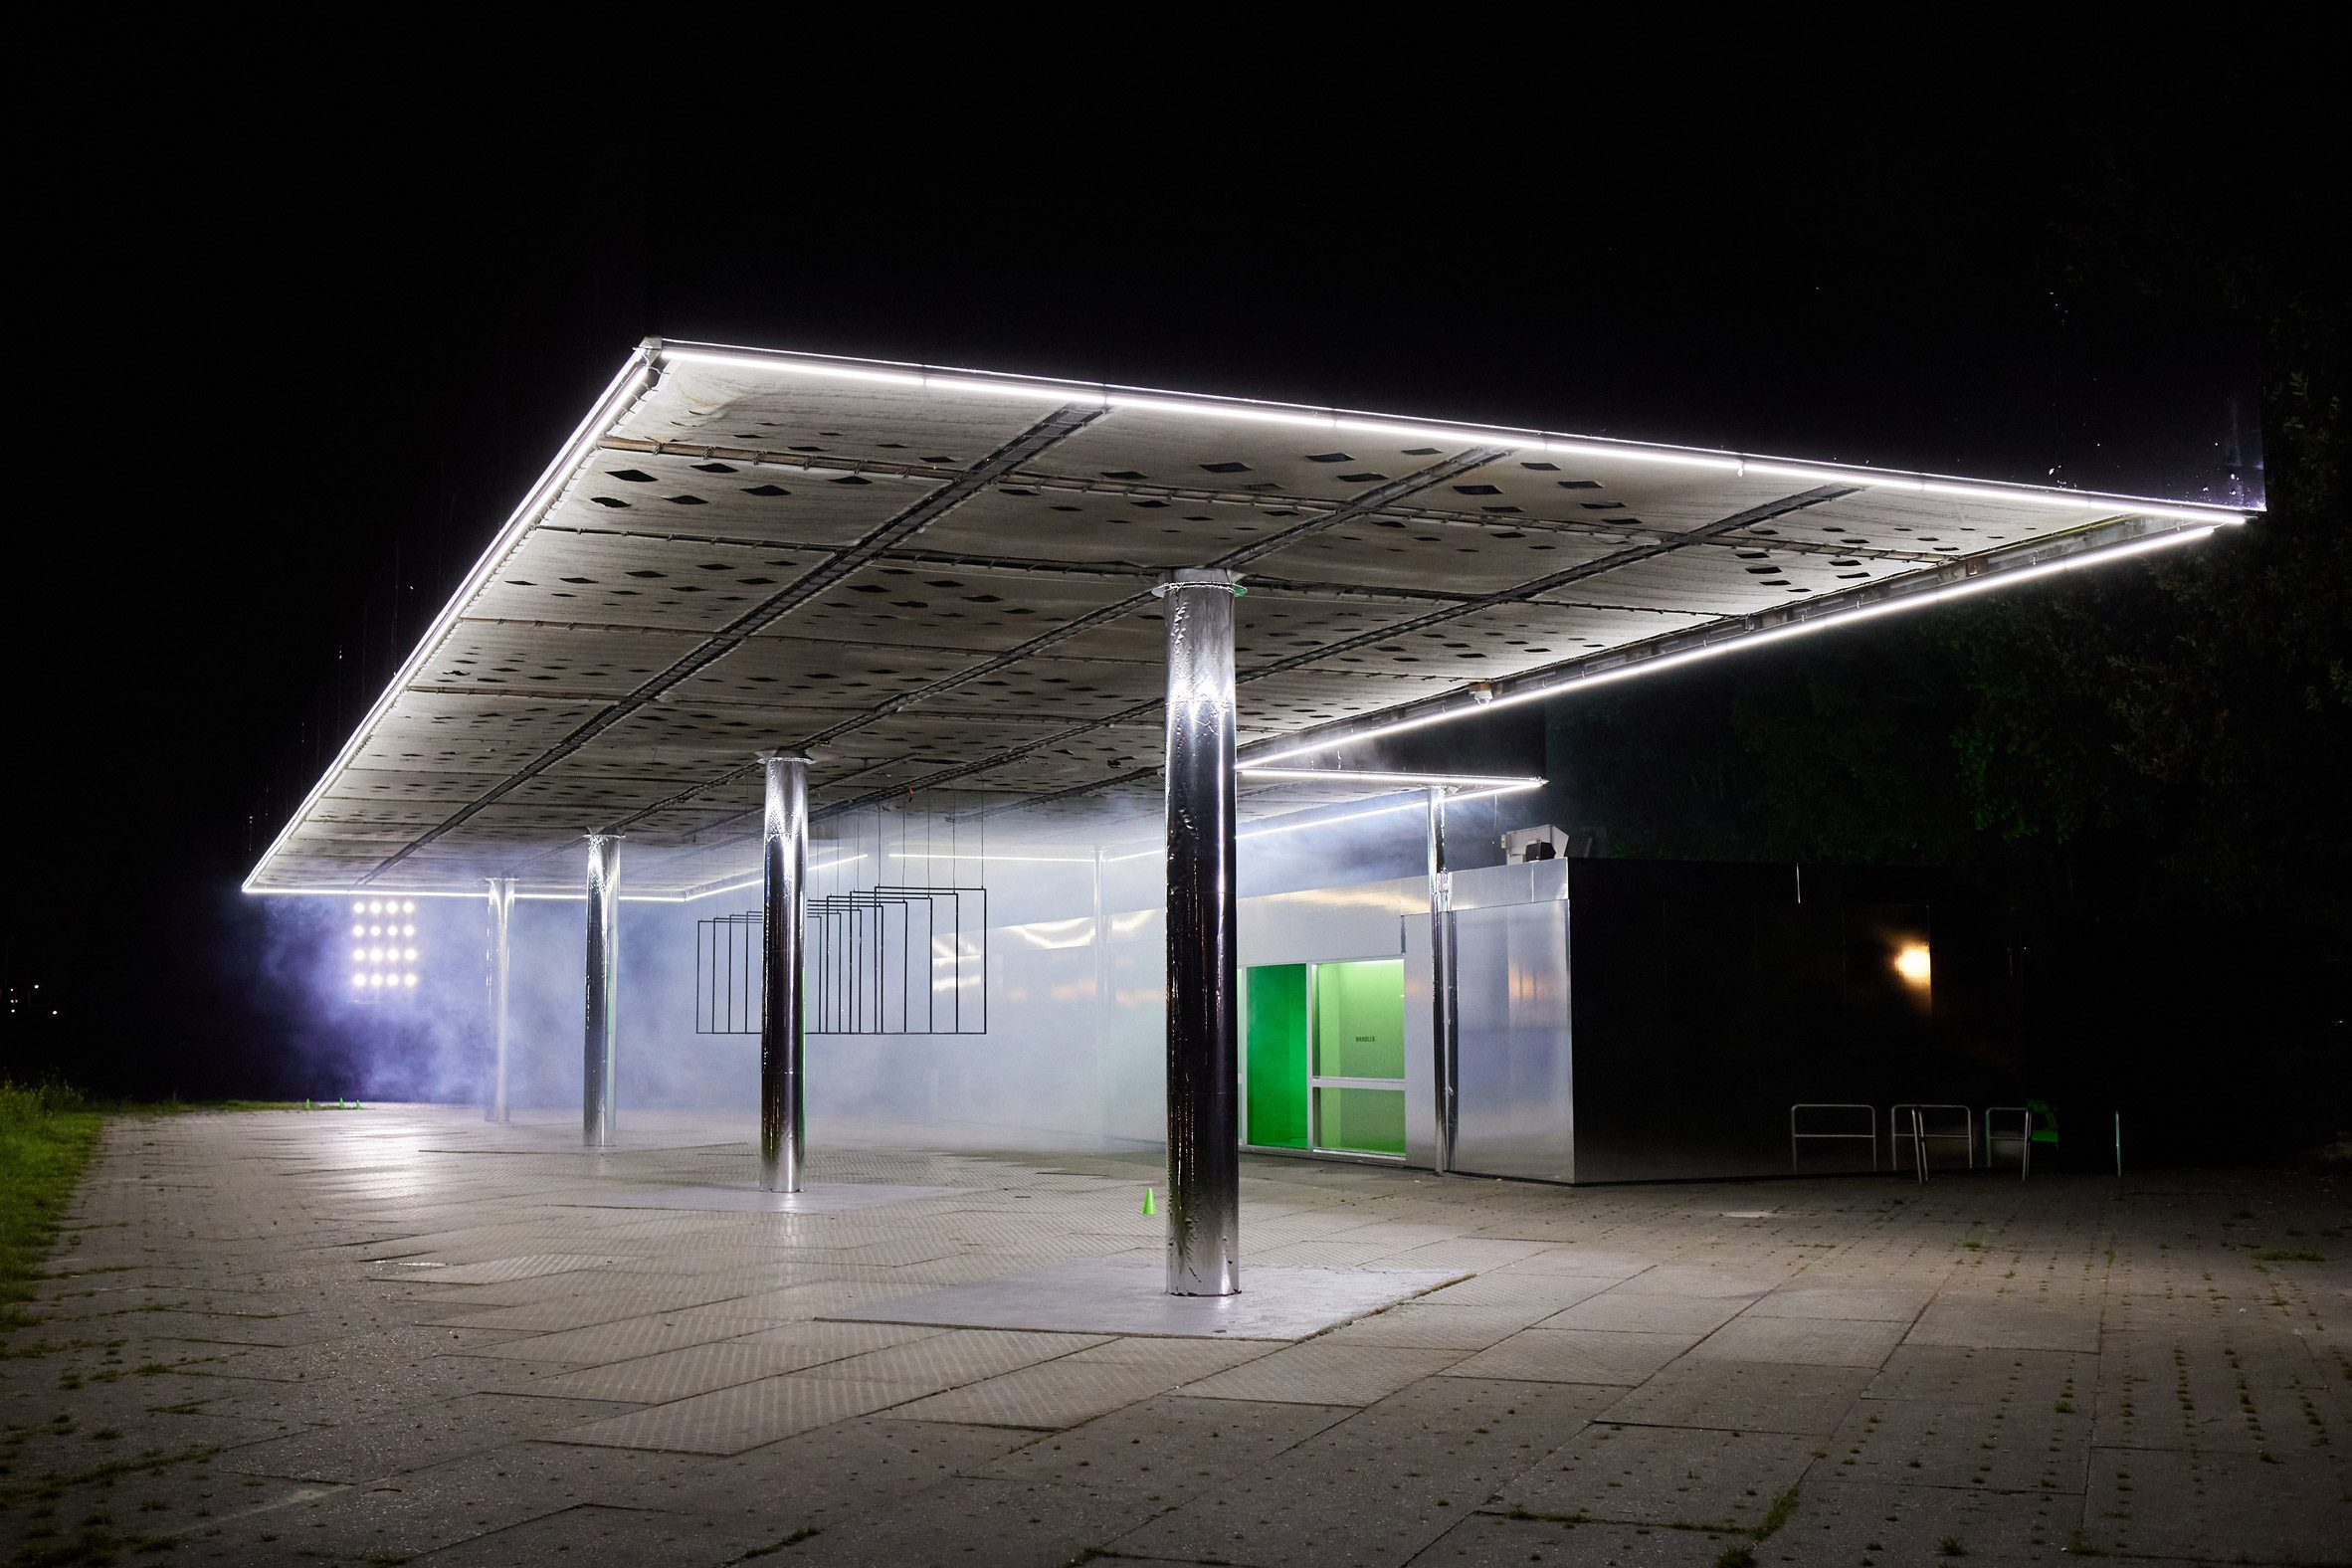 Wandler lit the structure with bright lighting